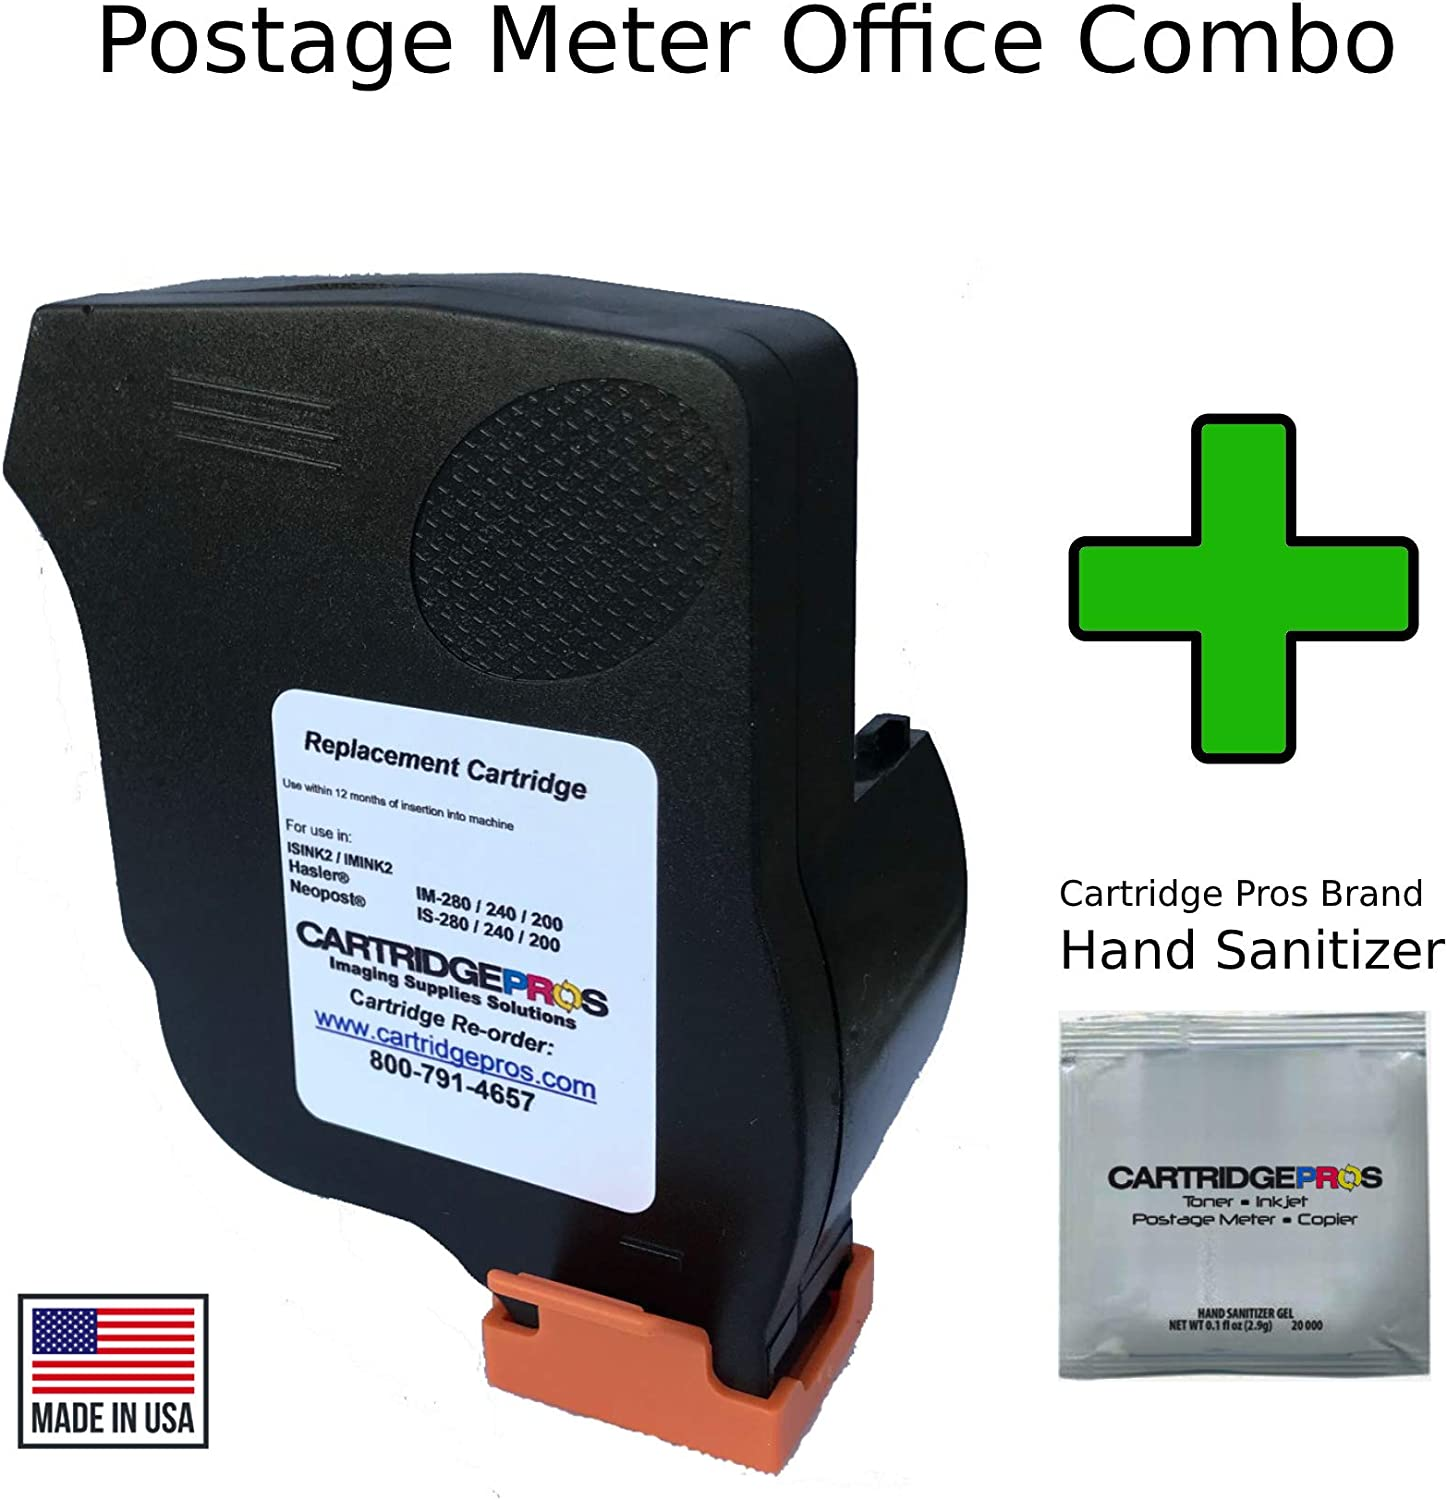 Made in USA Cartridge Pros Red Ink Cartridge ISINK2 for Neopost IS200, IS240 and IS280 Postage Machines. + Hand Sanitizer Gel Packet